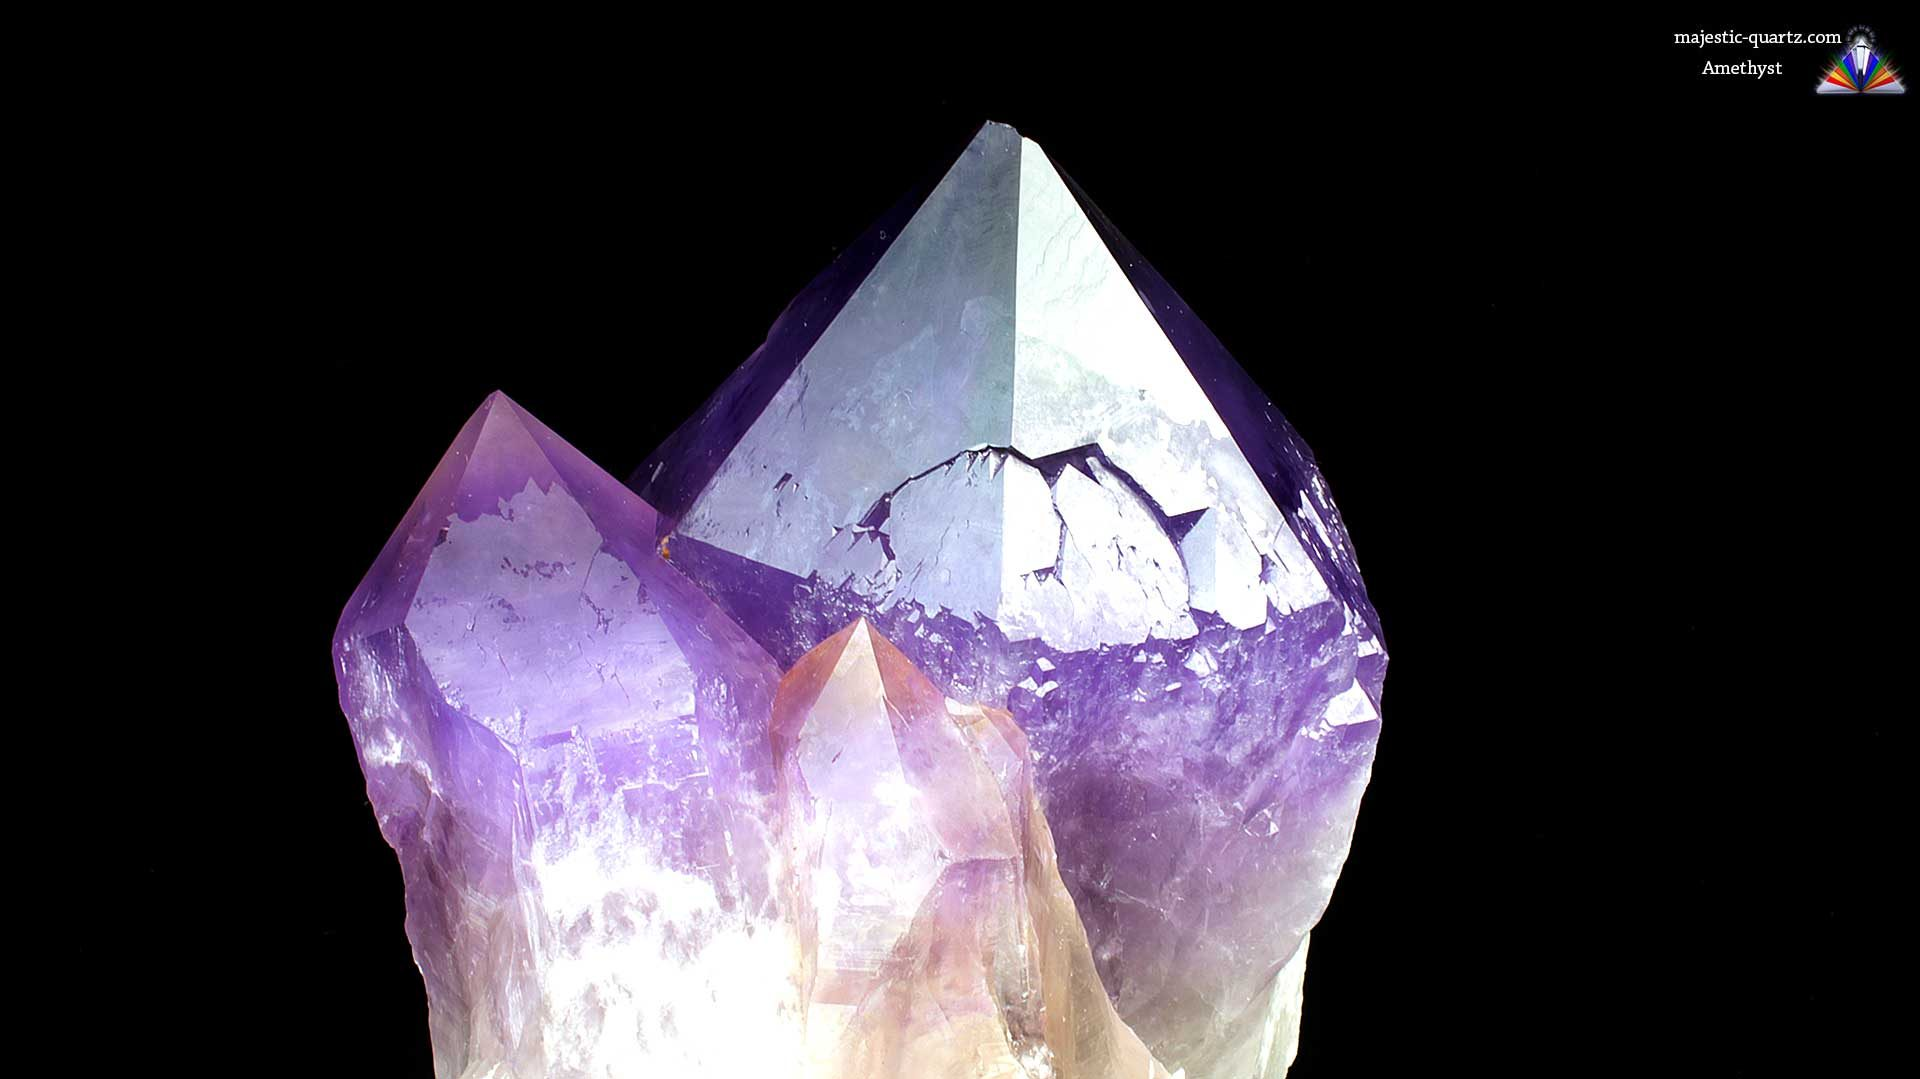 Sugilite properties and meaning photos crystal information - Amethyst Quartz Crystal Point Mineral Specimen